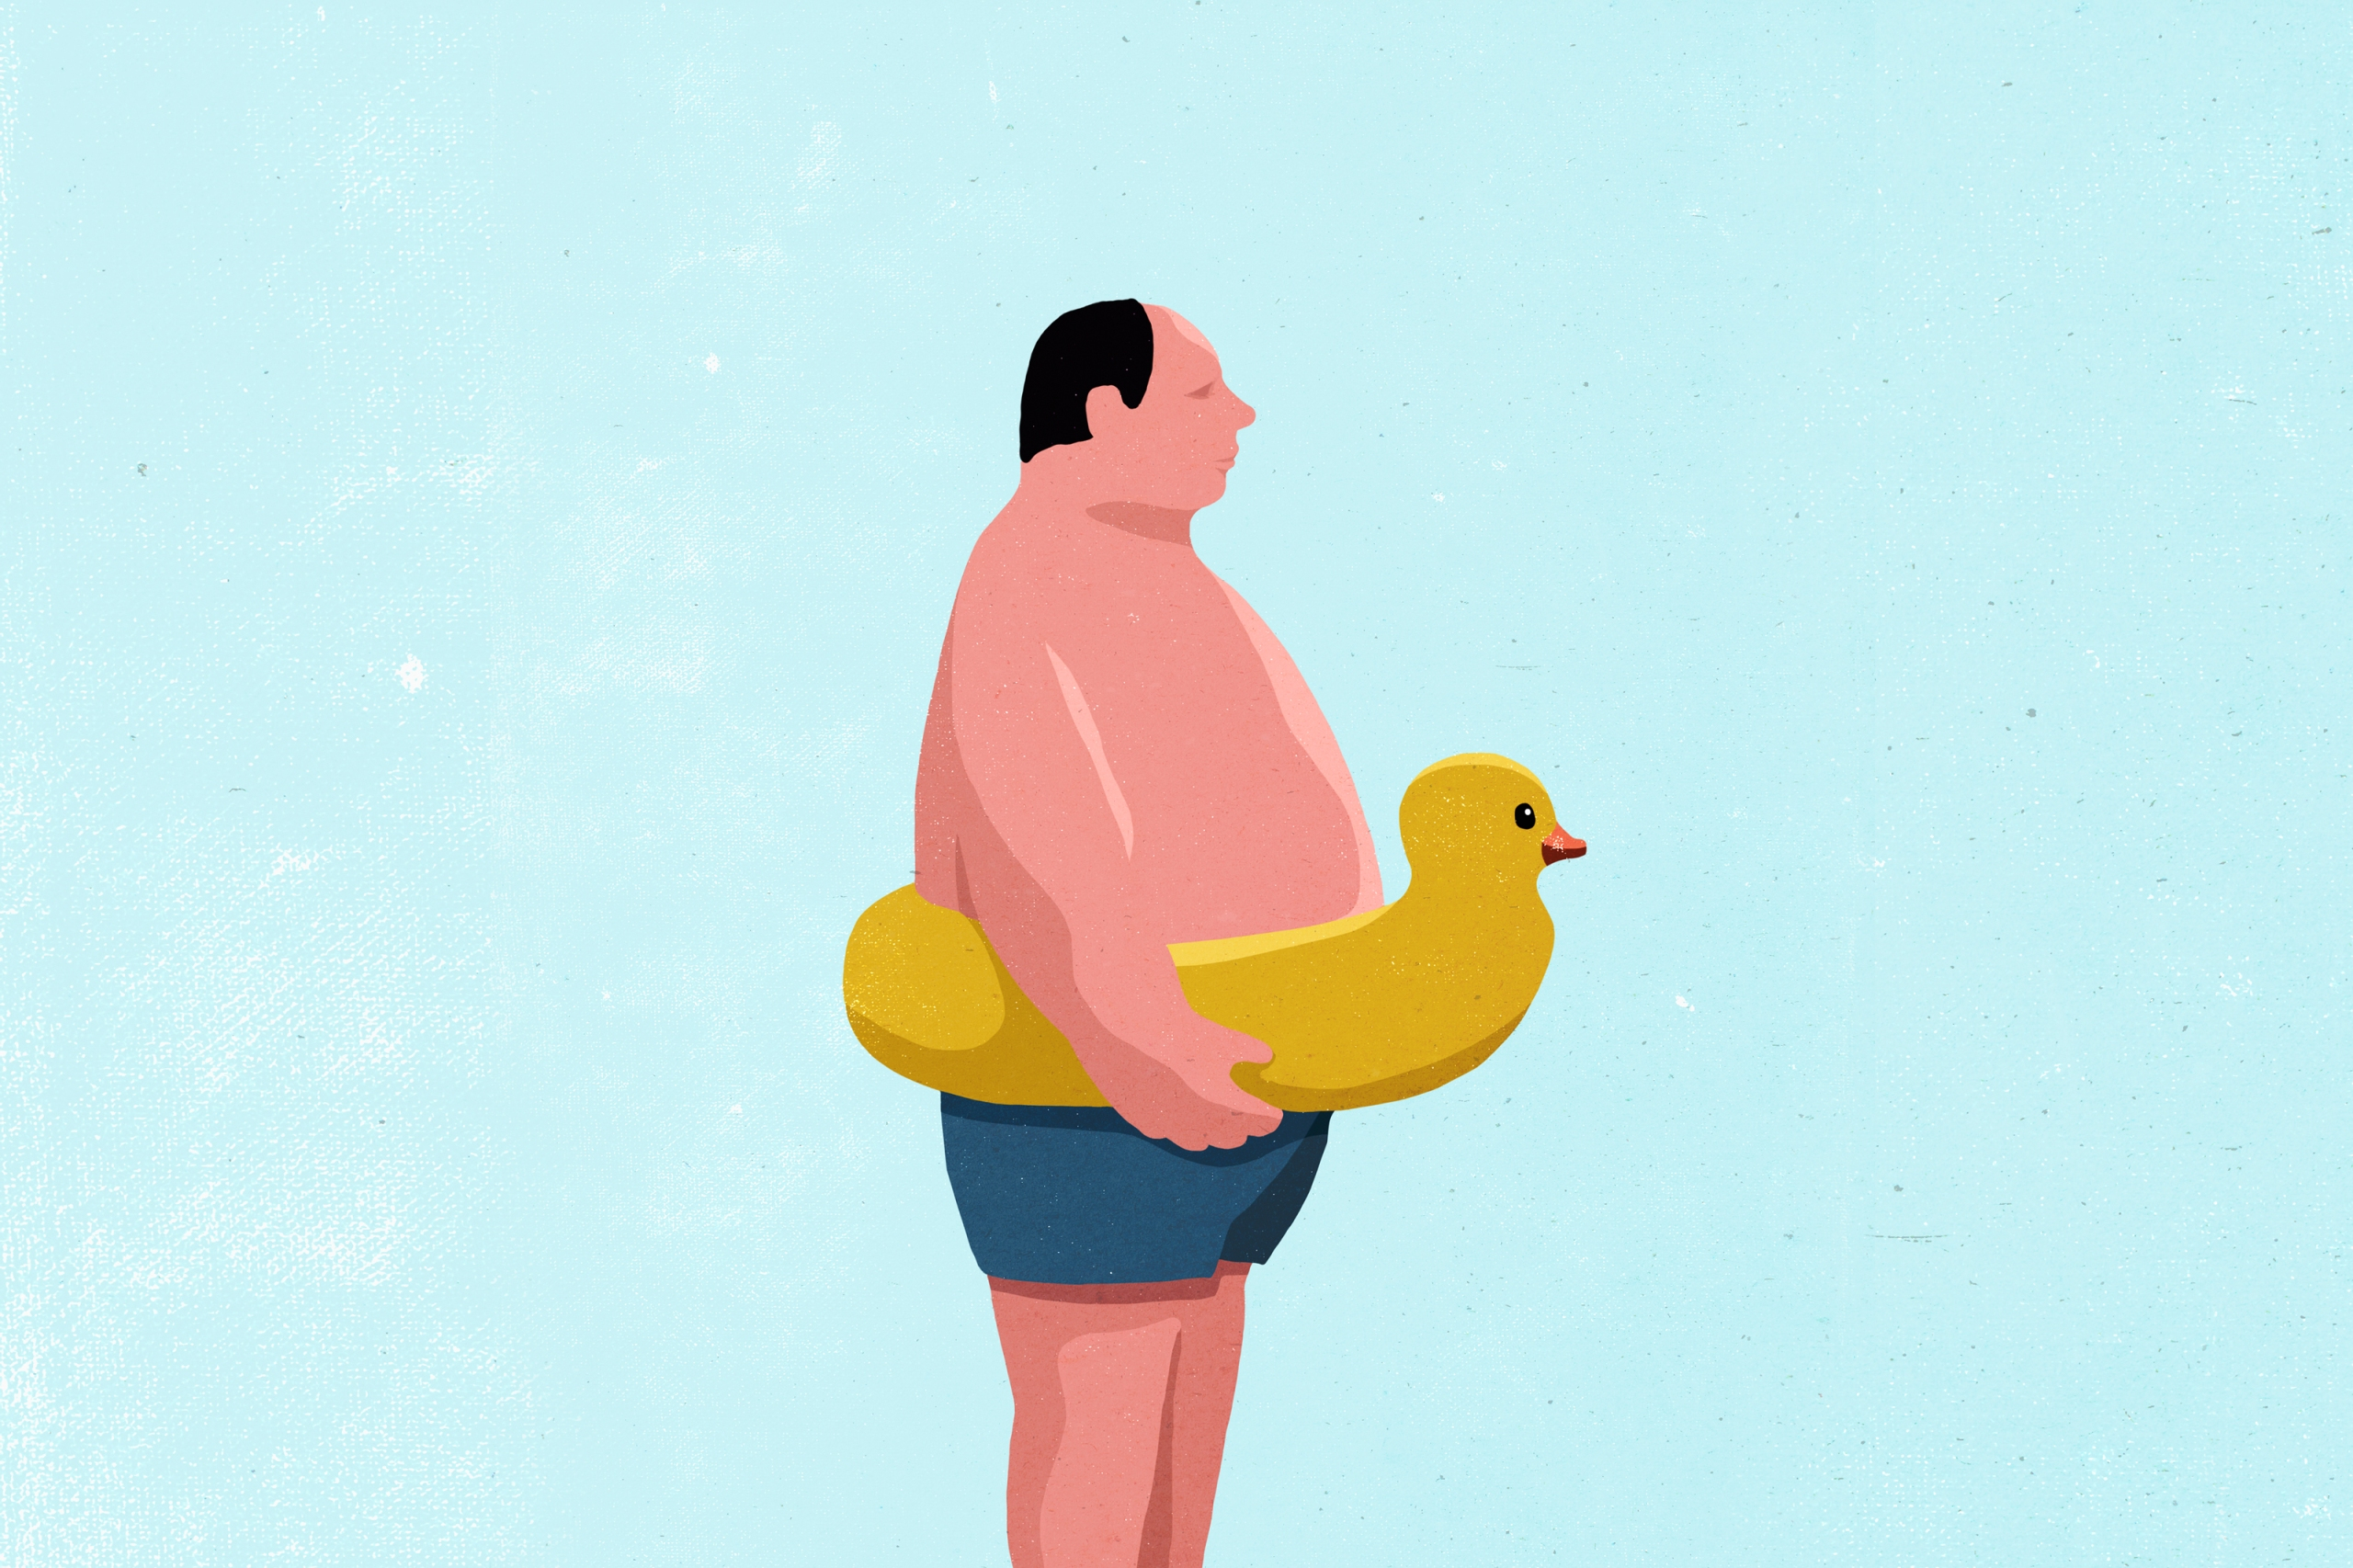 Man with swim float illustration